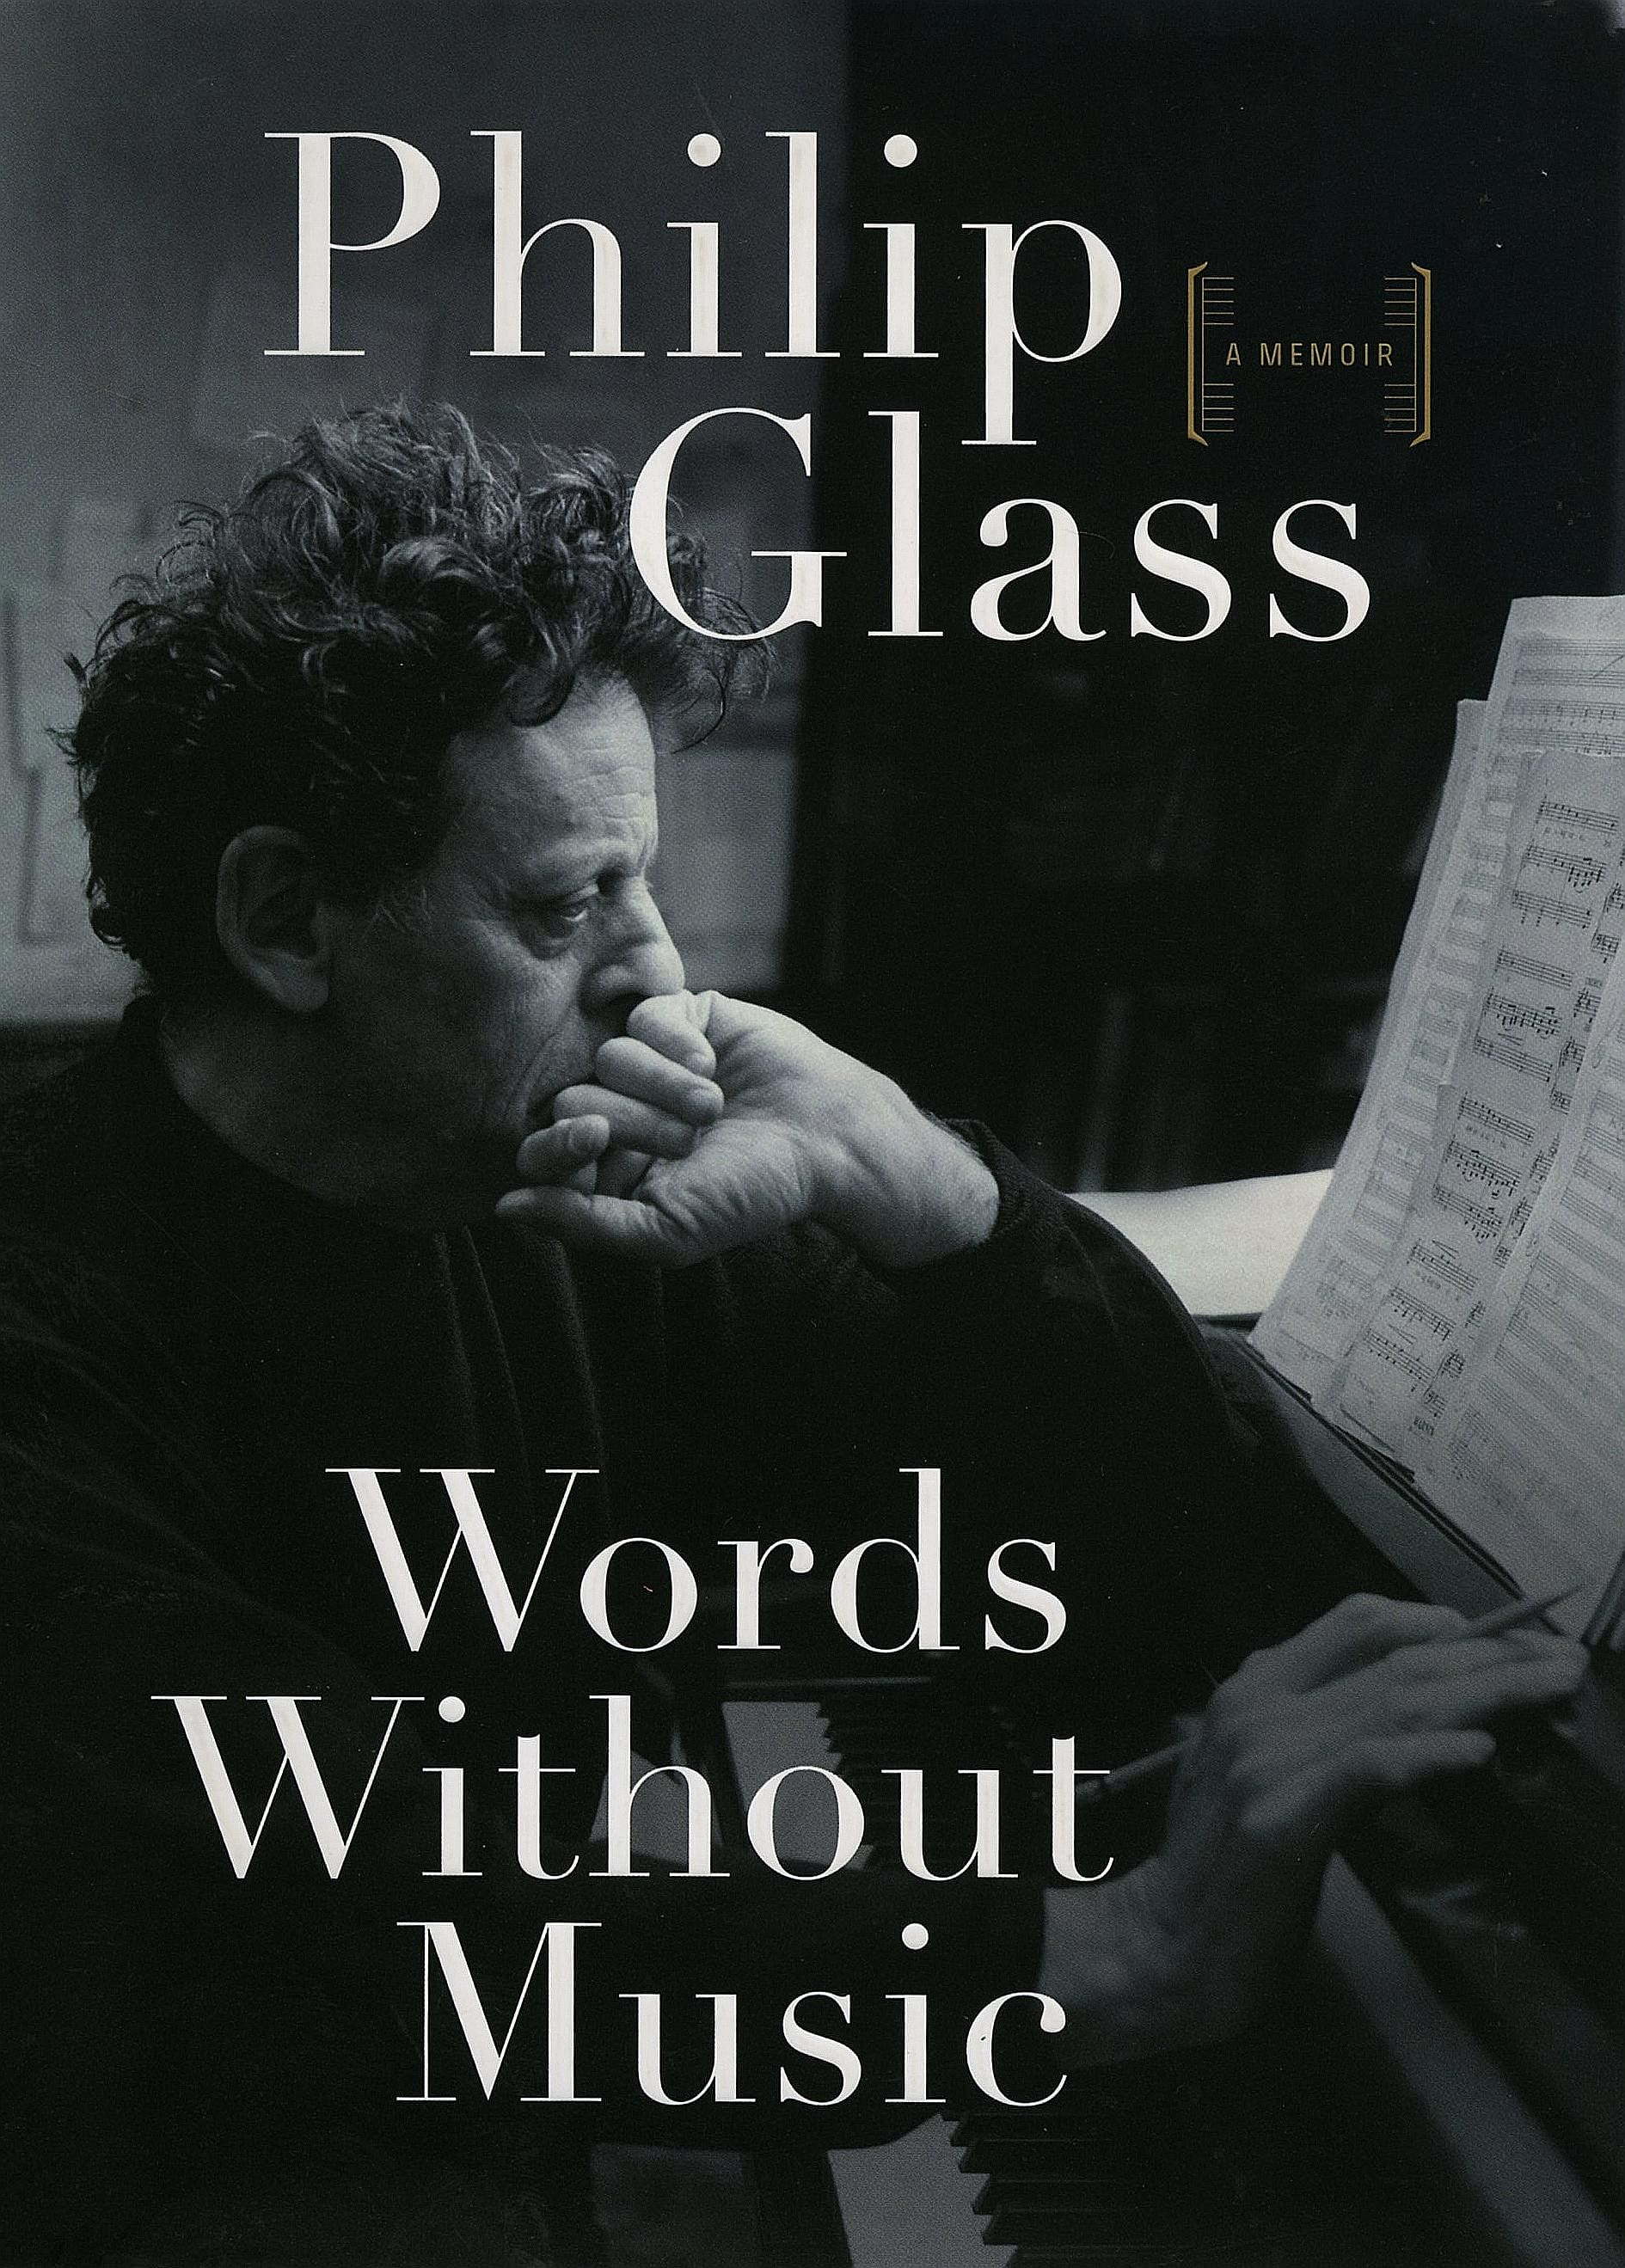 American composer and child prodigy Philip Glass has a life story that resonates on many levels, you need not even like music much to enjoy the book.